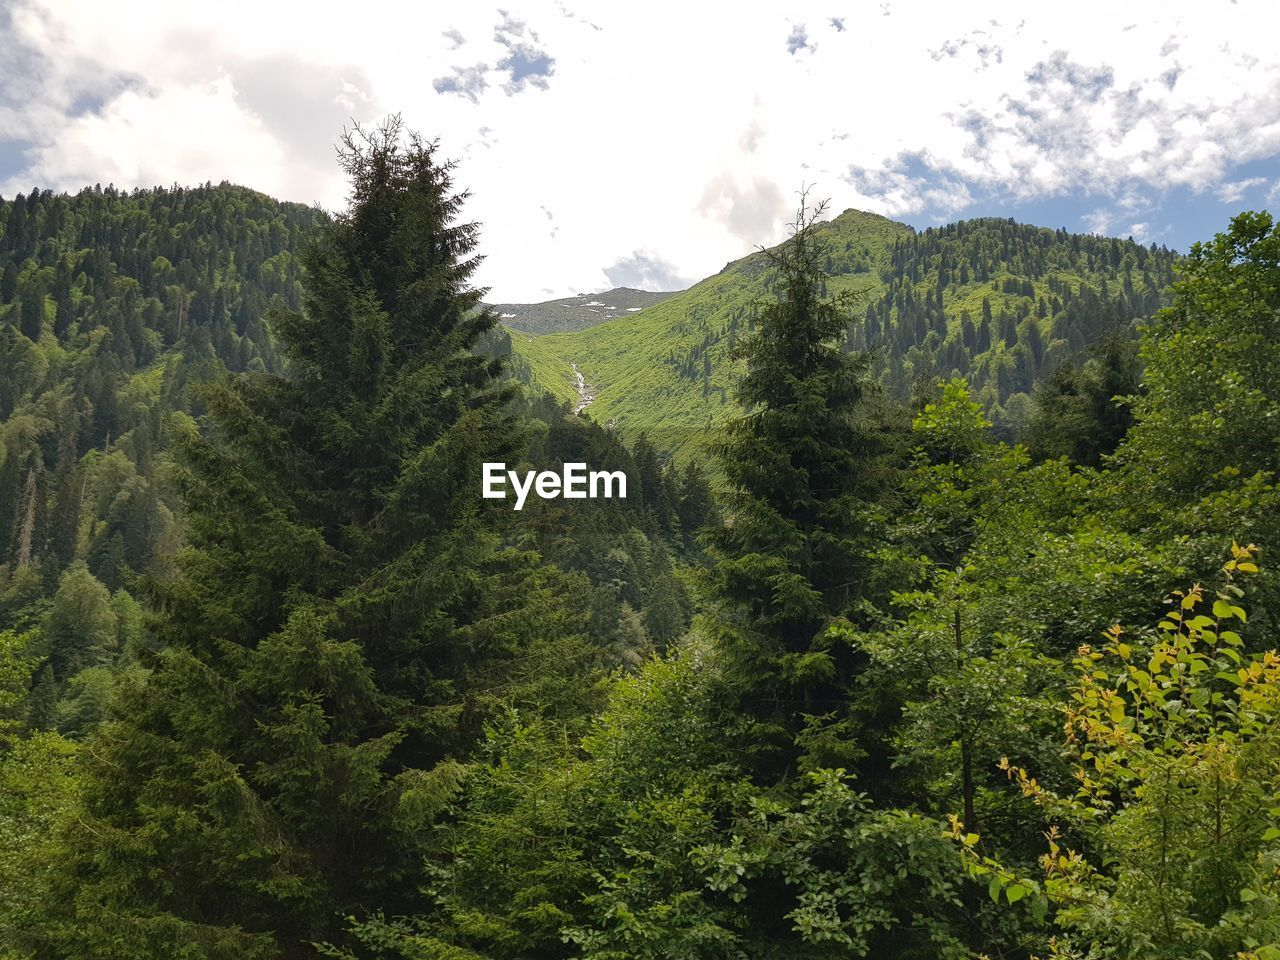 plant, sky, tree, growth, green color, beauty in nature, mountain, nature, environment, cloud - sky, no people, forest, scenics - nature, foliage, lush foliage, land, landscape, tranquil scene, tranquility, day, mountain range, high, range